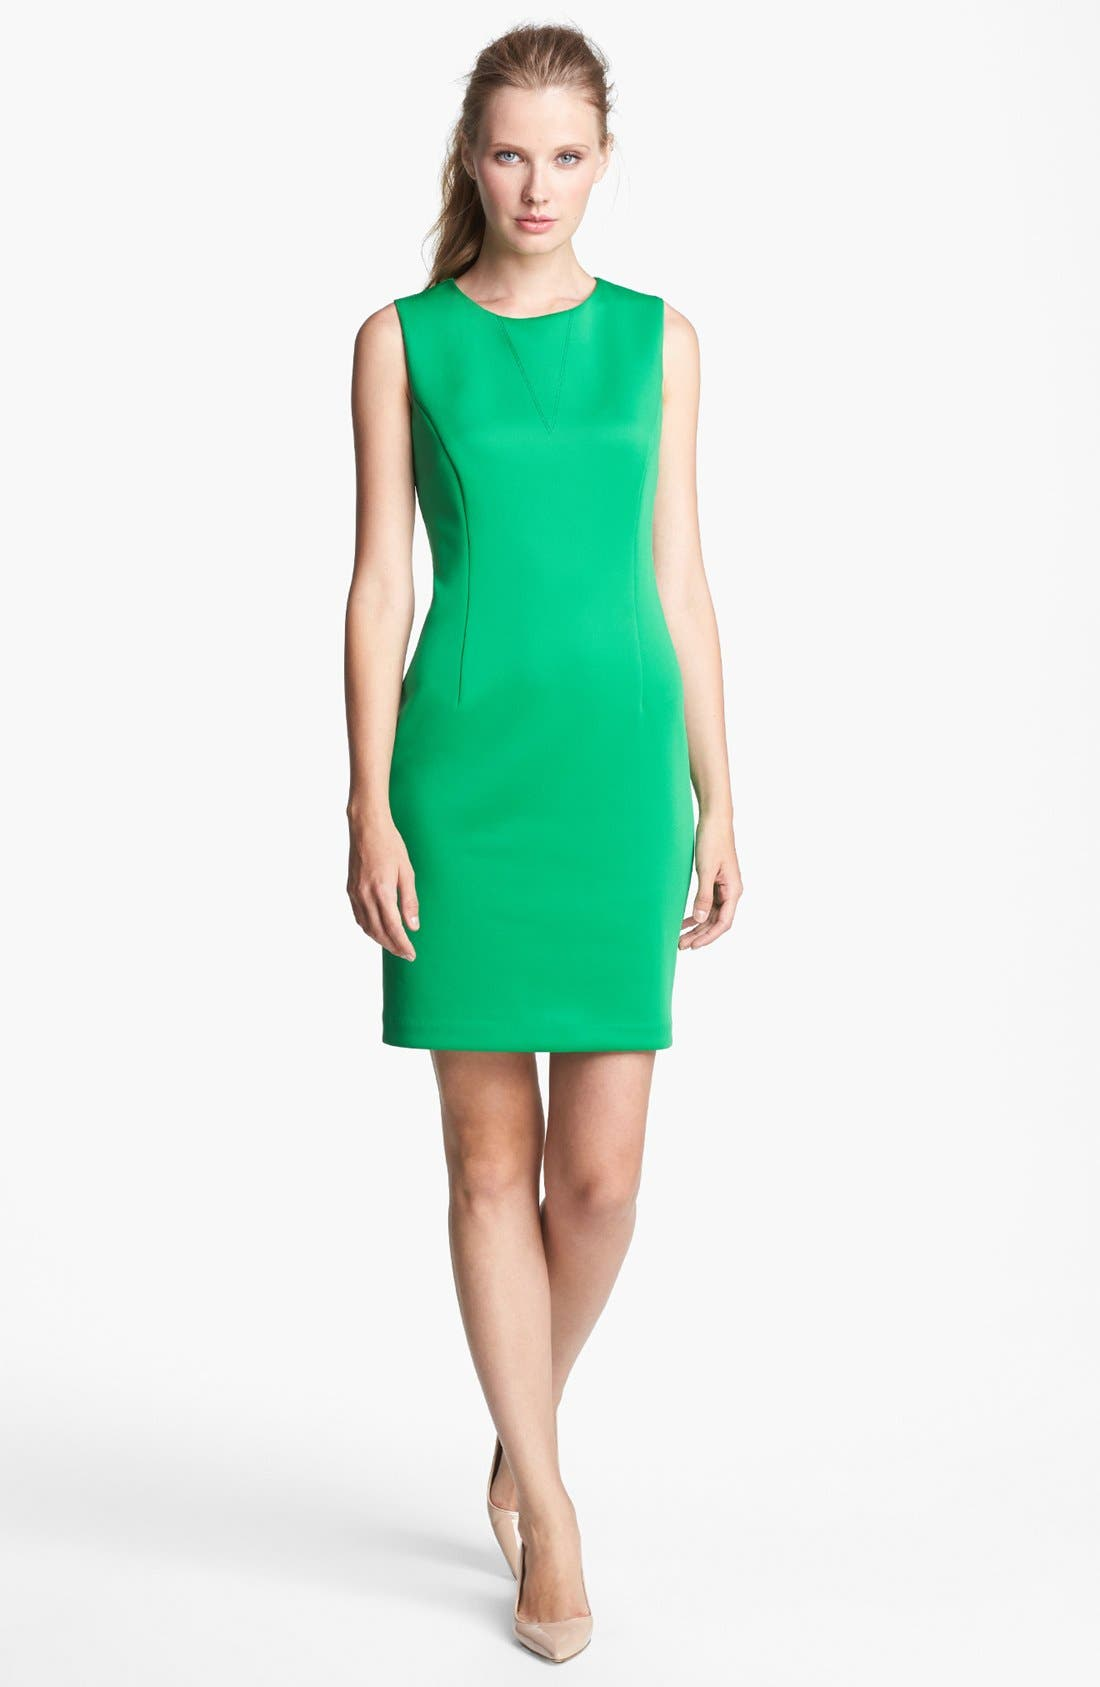 Alternate Image 1 Selected - Vince Camuto Scuba Knit Sheath Dress